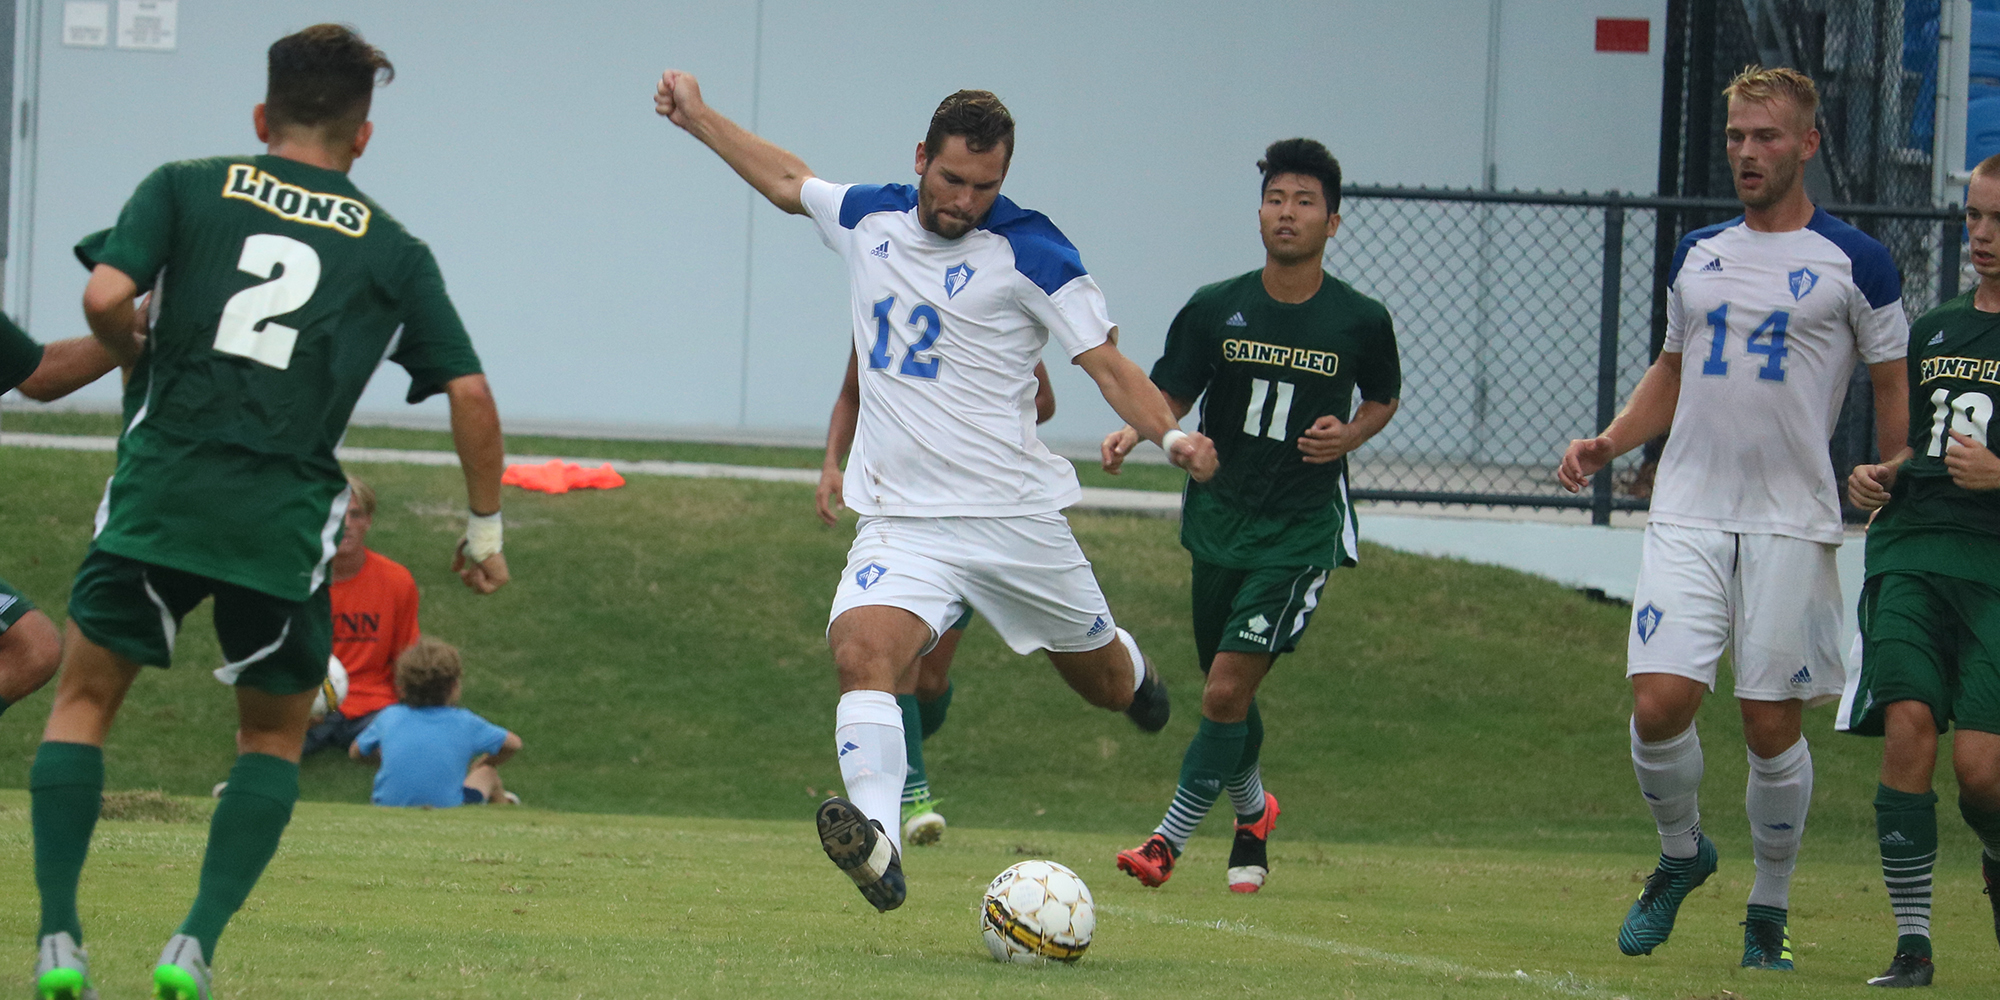 Strohmaier Puts Men's Soccer Back on Winning Track